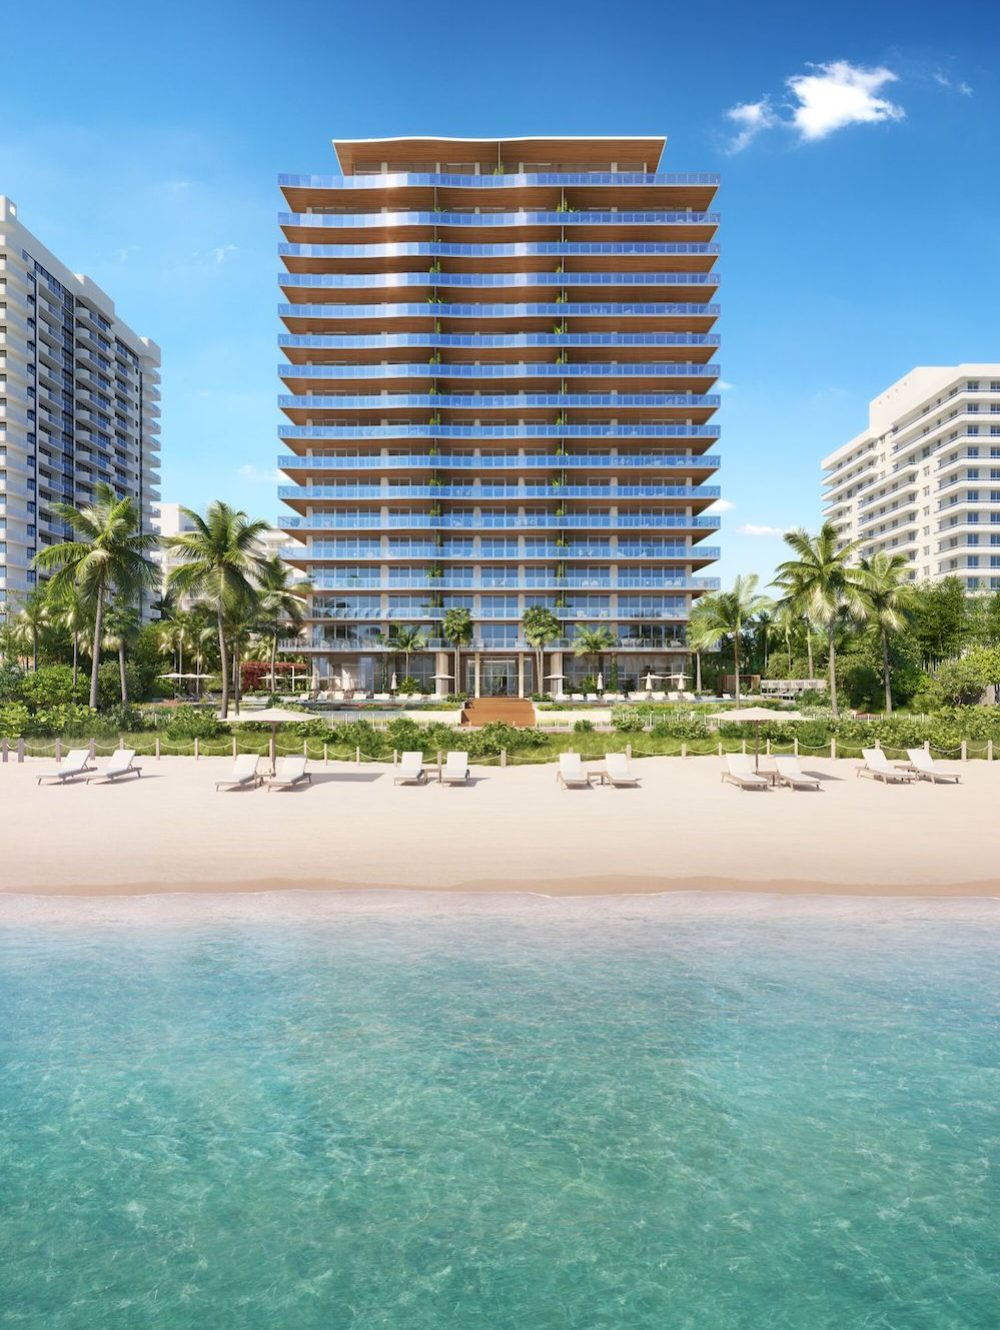 Exterior zoomed out view of 57 Ocean condominiums in Miami. Has view of oceanfront, palm trees and blue sky.